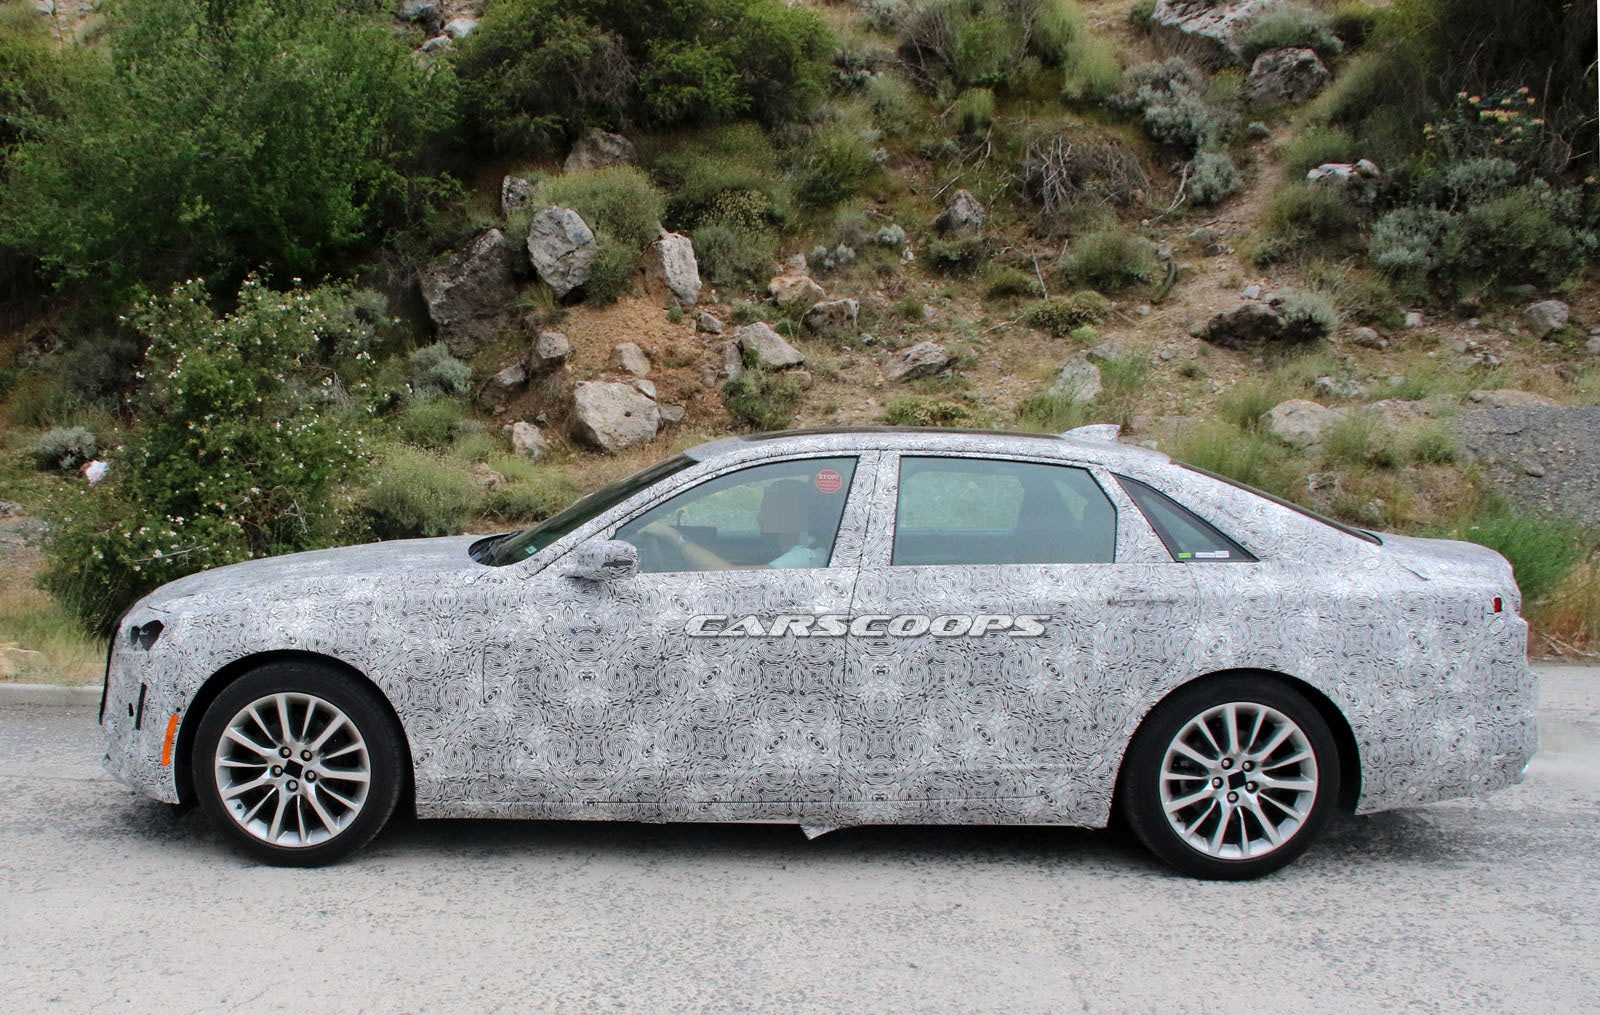 facelifted 2019 cadillac ct6 scooped in europe could come with more power carscoops. Black Bedroom Furniture Sets. Home Design Ideas